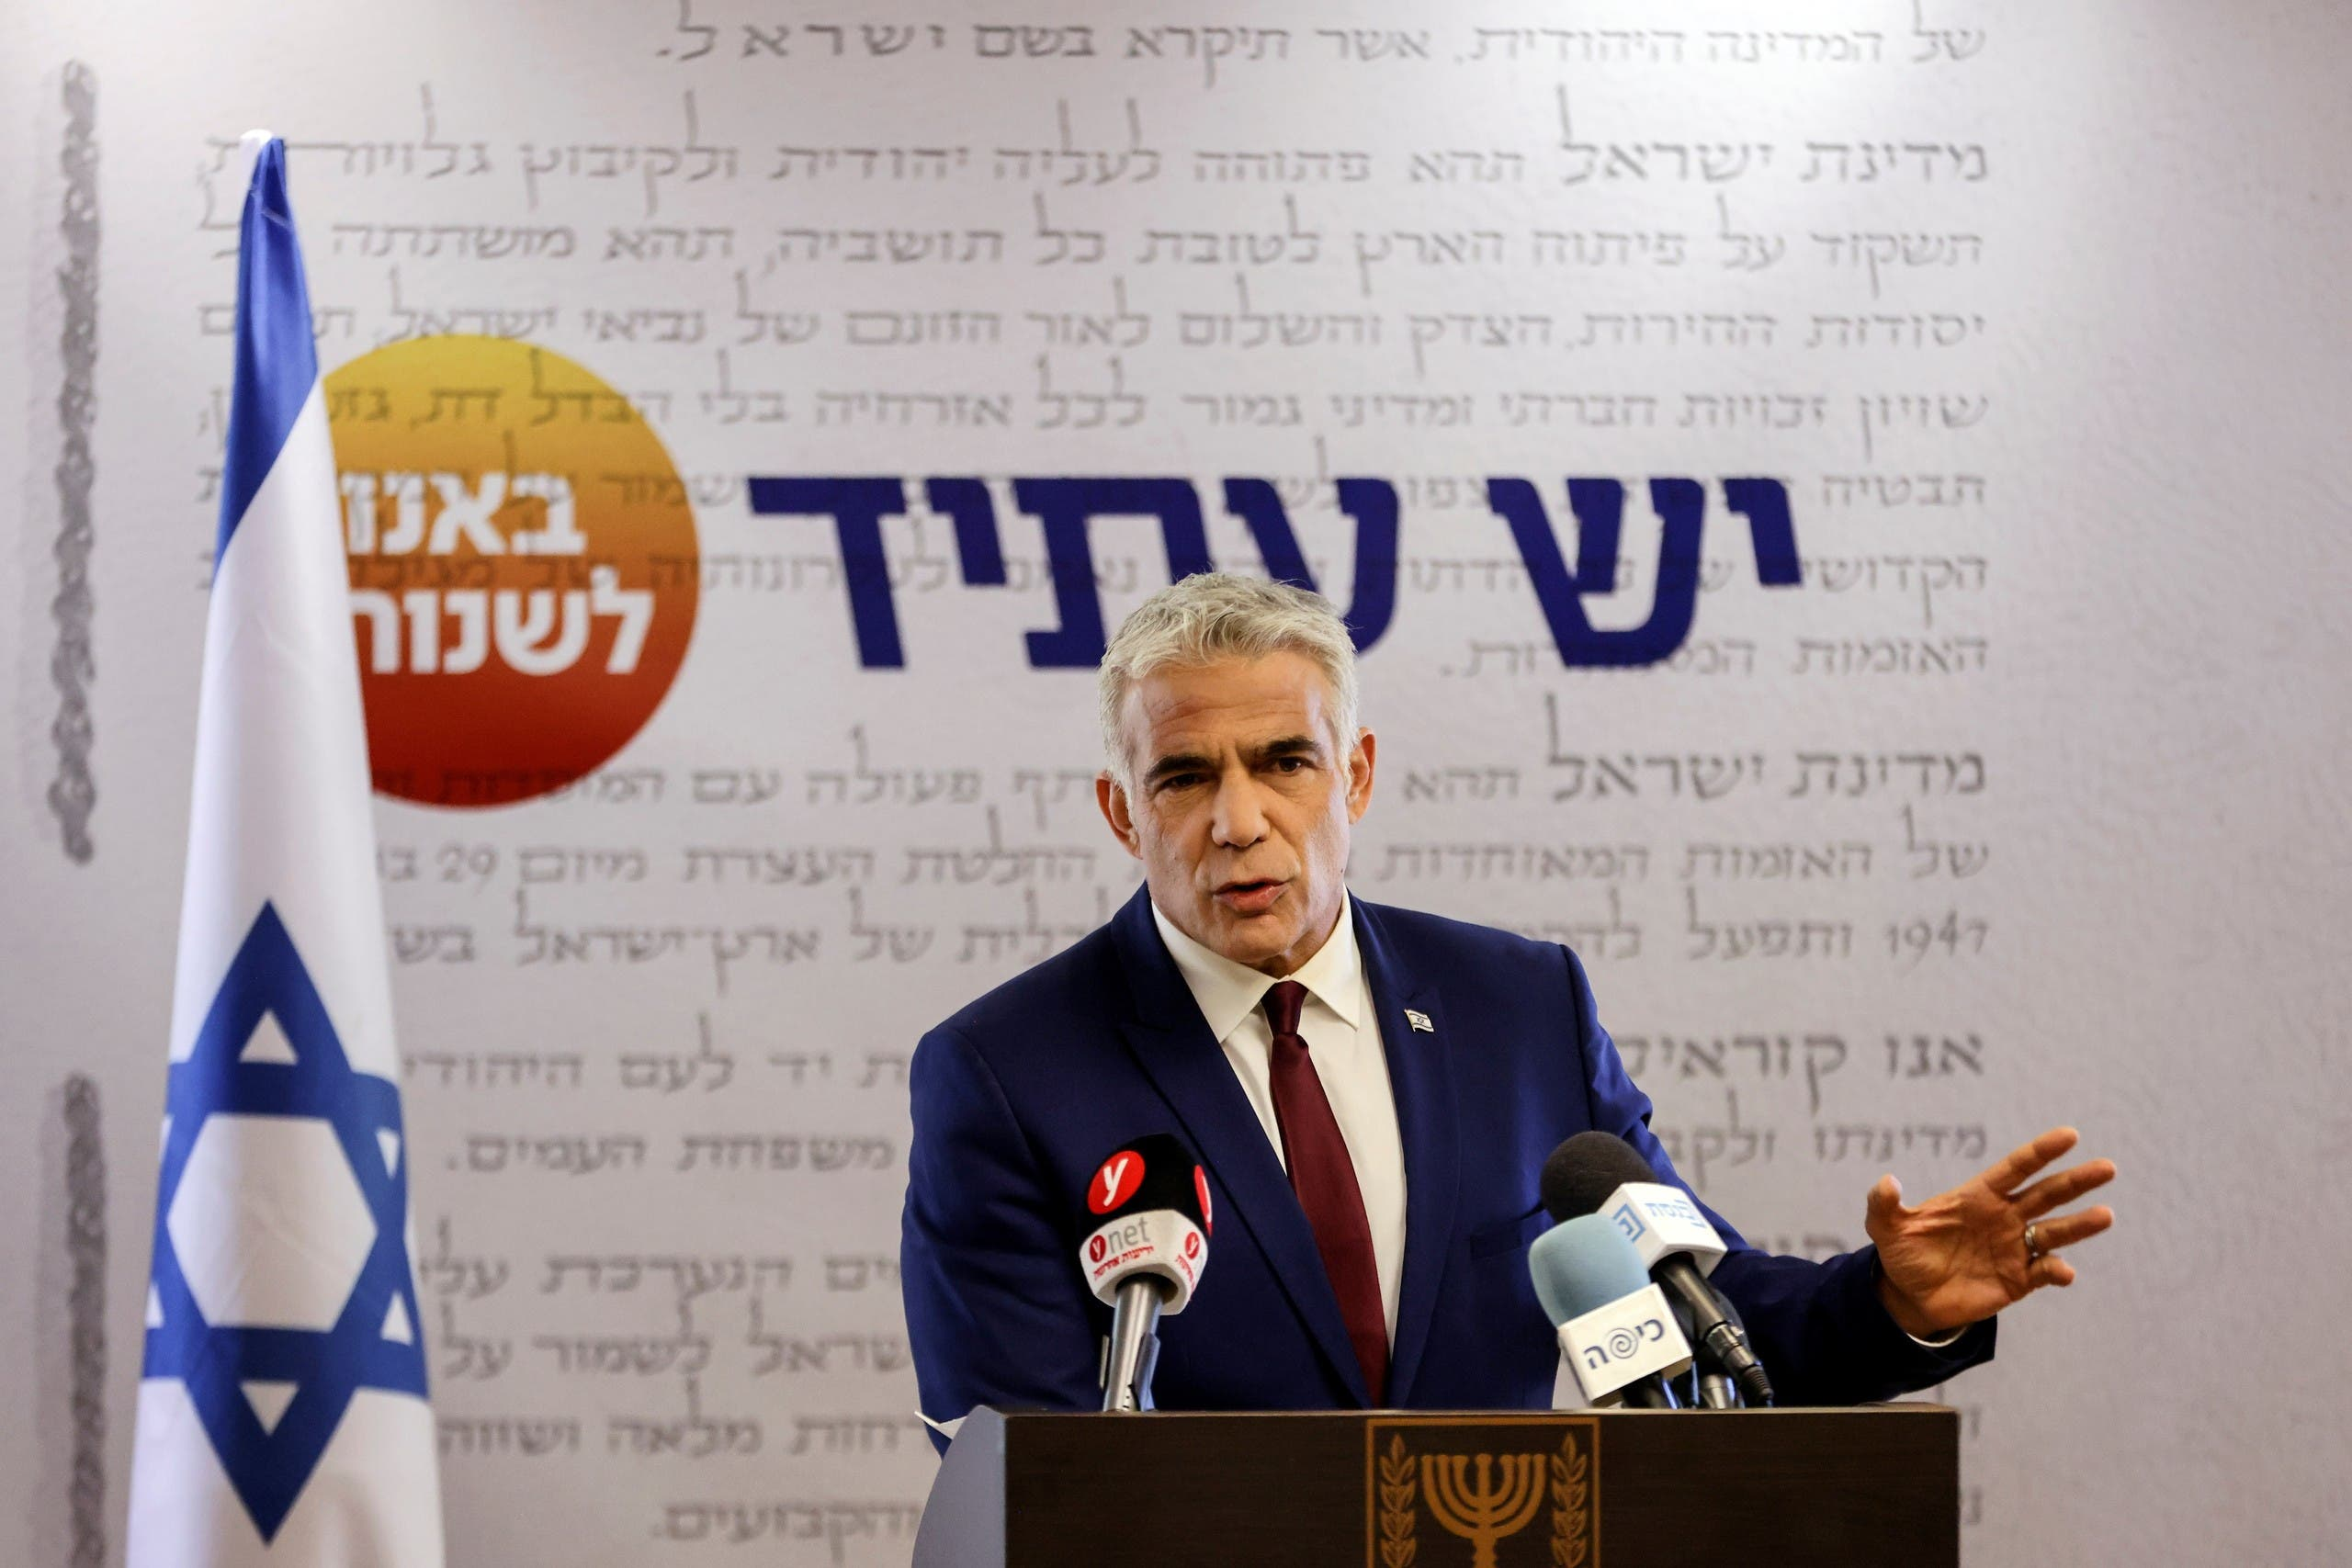 The Israeli parliament is voting today on a government die Netanyahu's rule ended